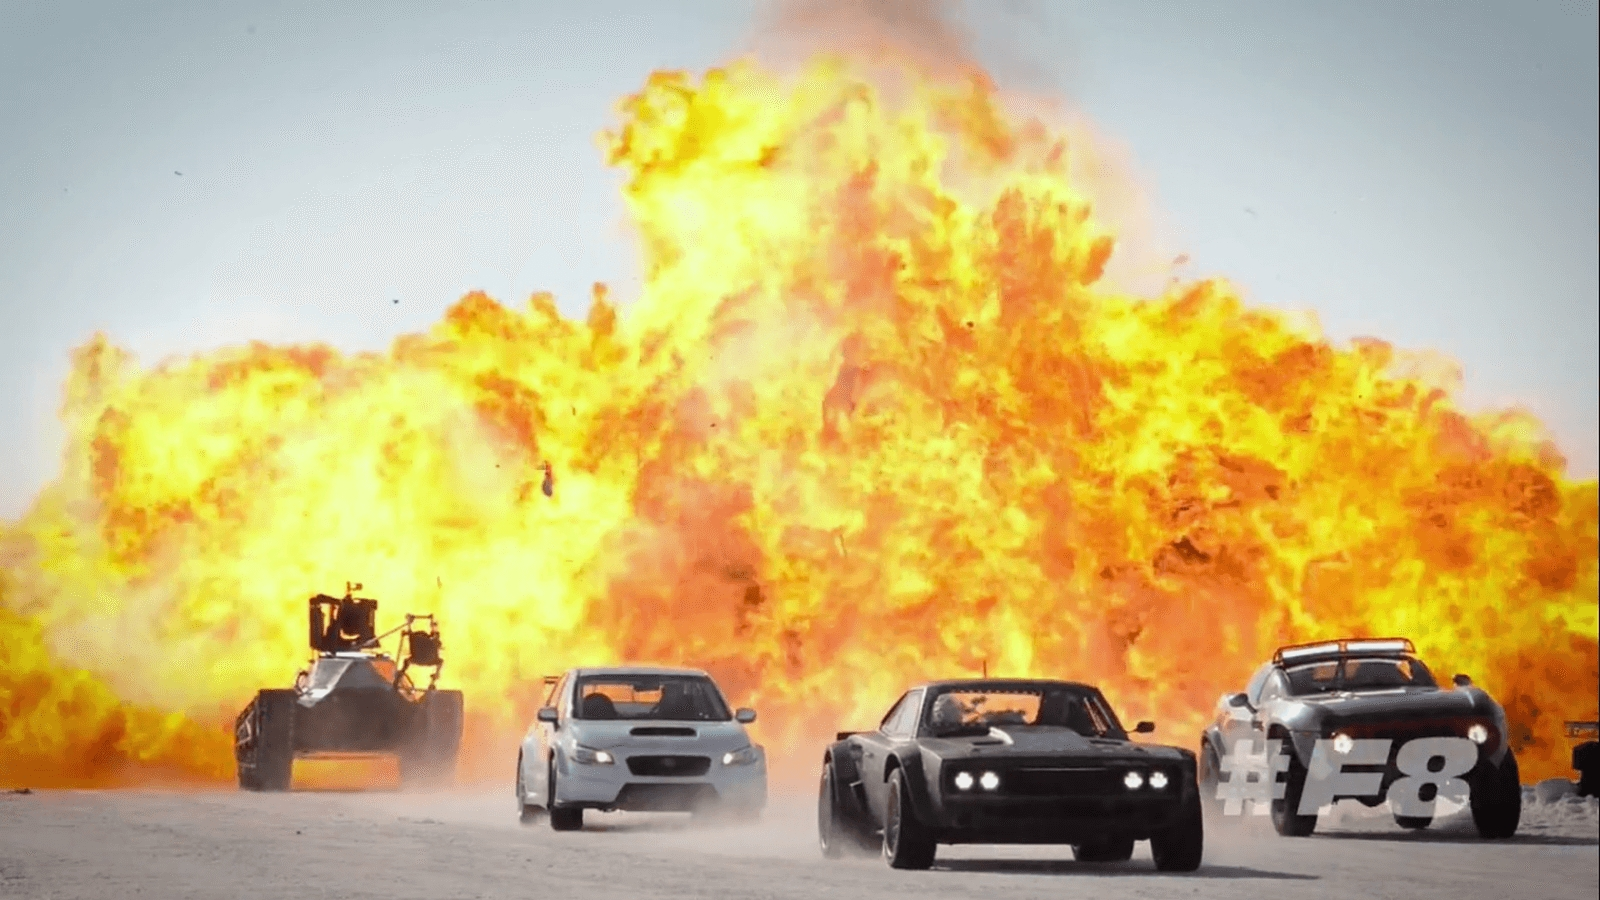 Video Fast And Furious 8 Team Sets Iceland On Fire together with Audi R8 Luxury Roadster together with Most Exciting 4x4 And Off Road Vehicles Arriving In 2018 67337 additionally 1970 Dodge Challenger Rt 16841c22eaa244a7 furthermore Nissan gtr clipart. on cool fast and furious cars